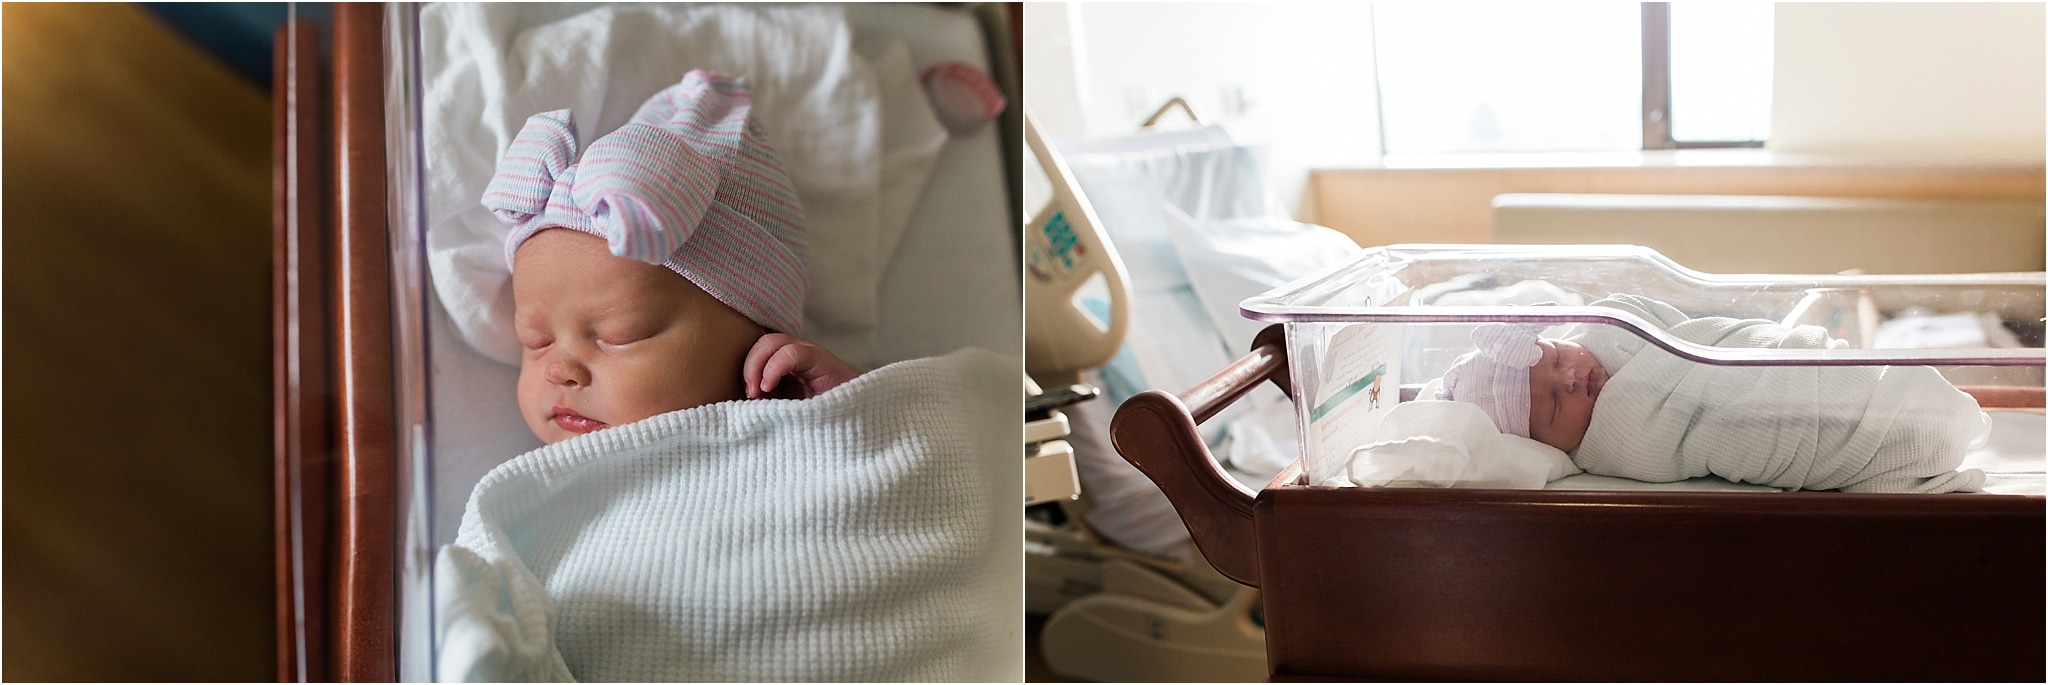 Newborn photos at West Penn Hospital in Pittsburgh PA